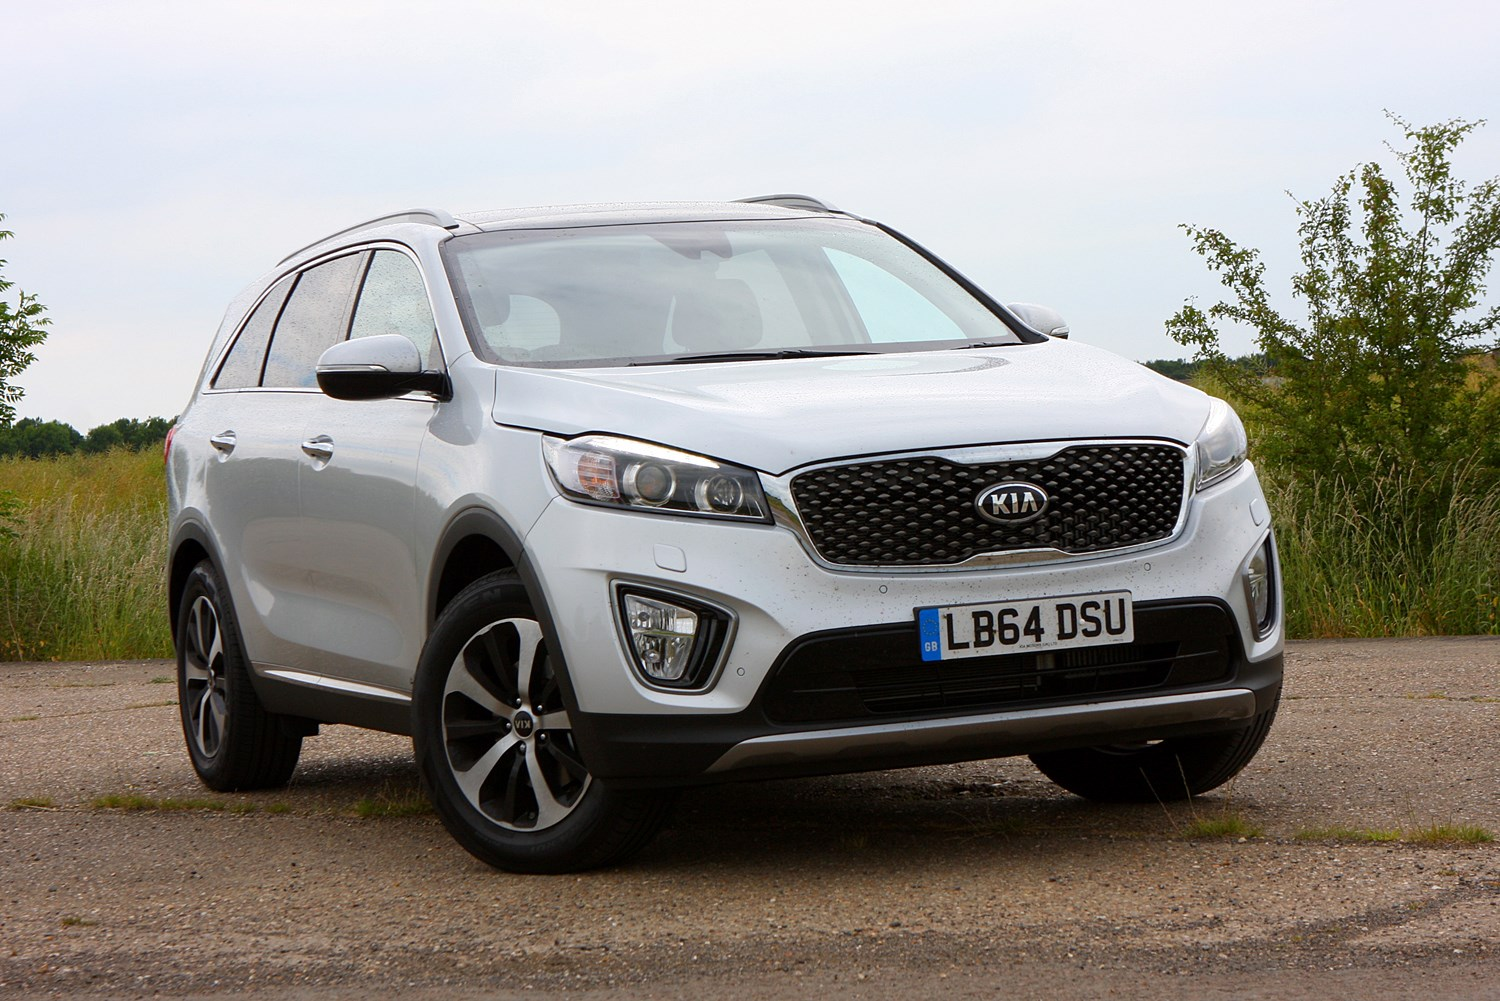 2018 Kia Sorento Review, Ratings, Specs, Prices, and ...